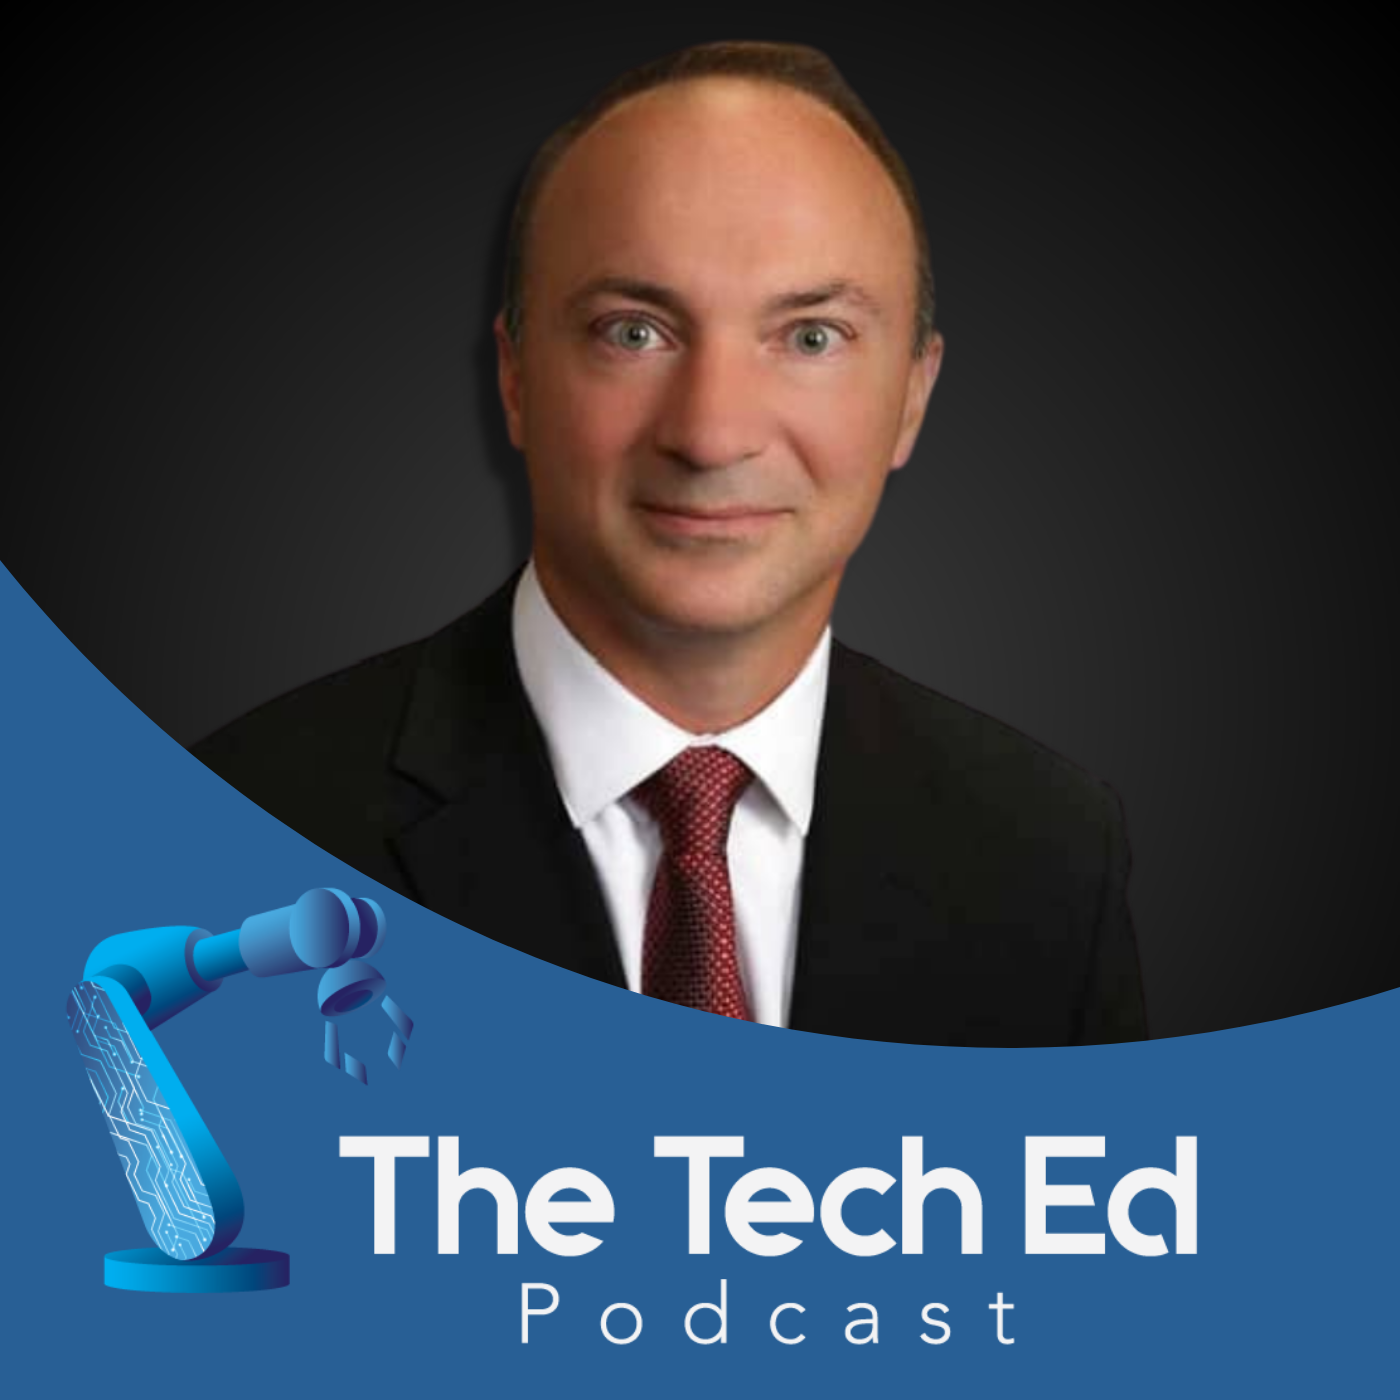 Chris Drees on The TechEd Podcast